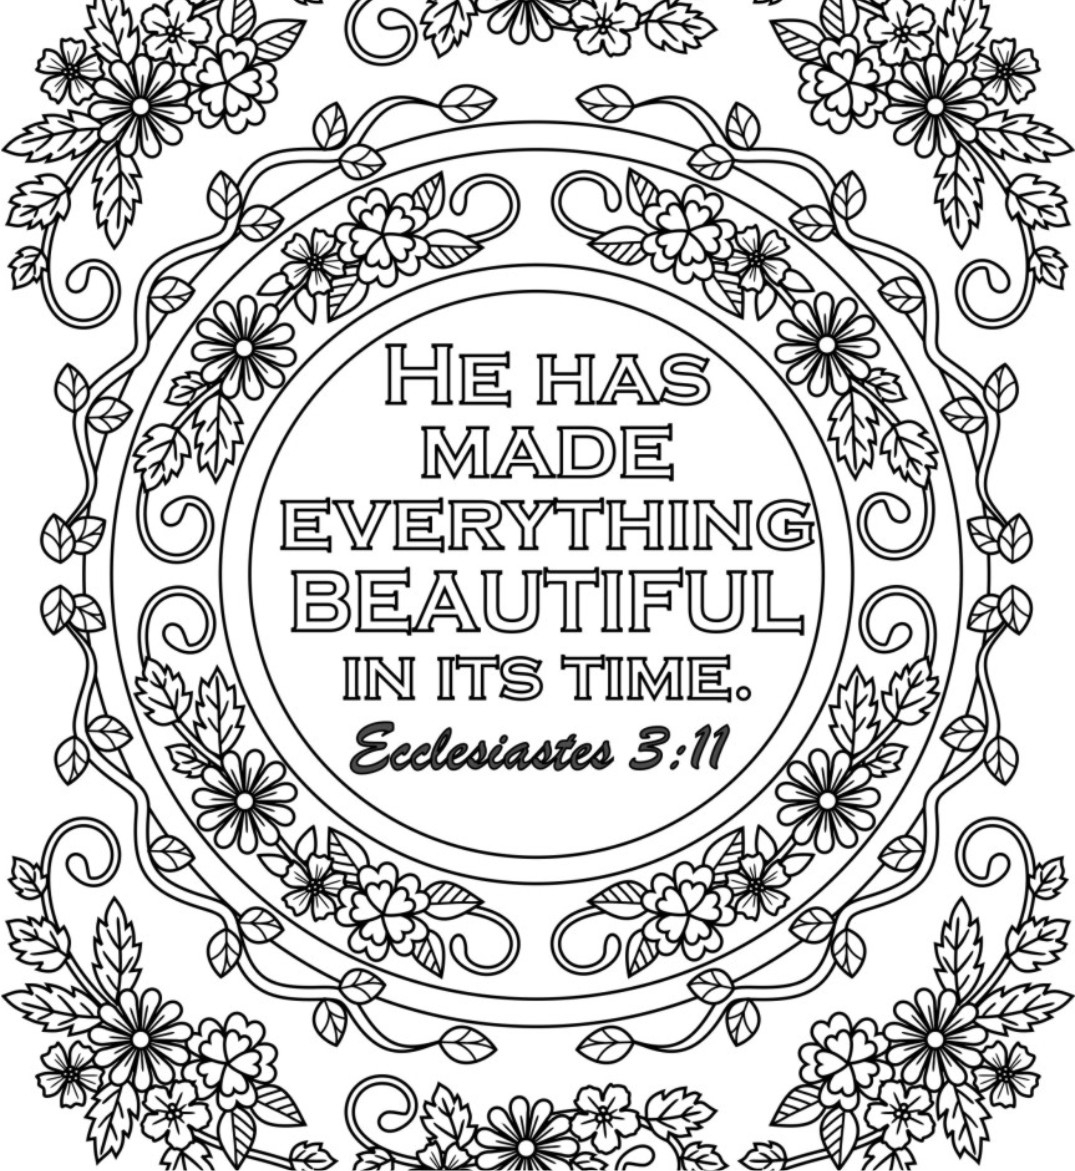 Awesome 15 Printable Bible Verse Coloring Pages Free Coloring Book to Print Of Free Printable Adult Coloring Pages Hymns & Scripture Our Printable